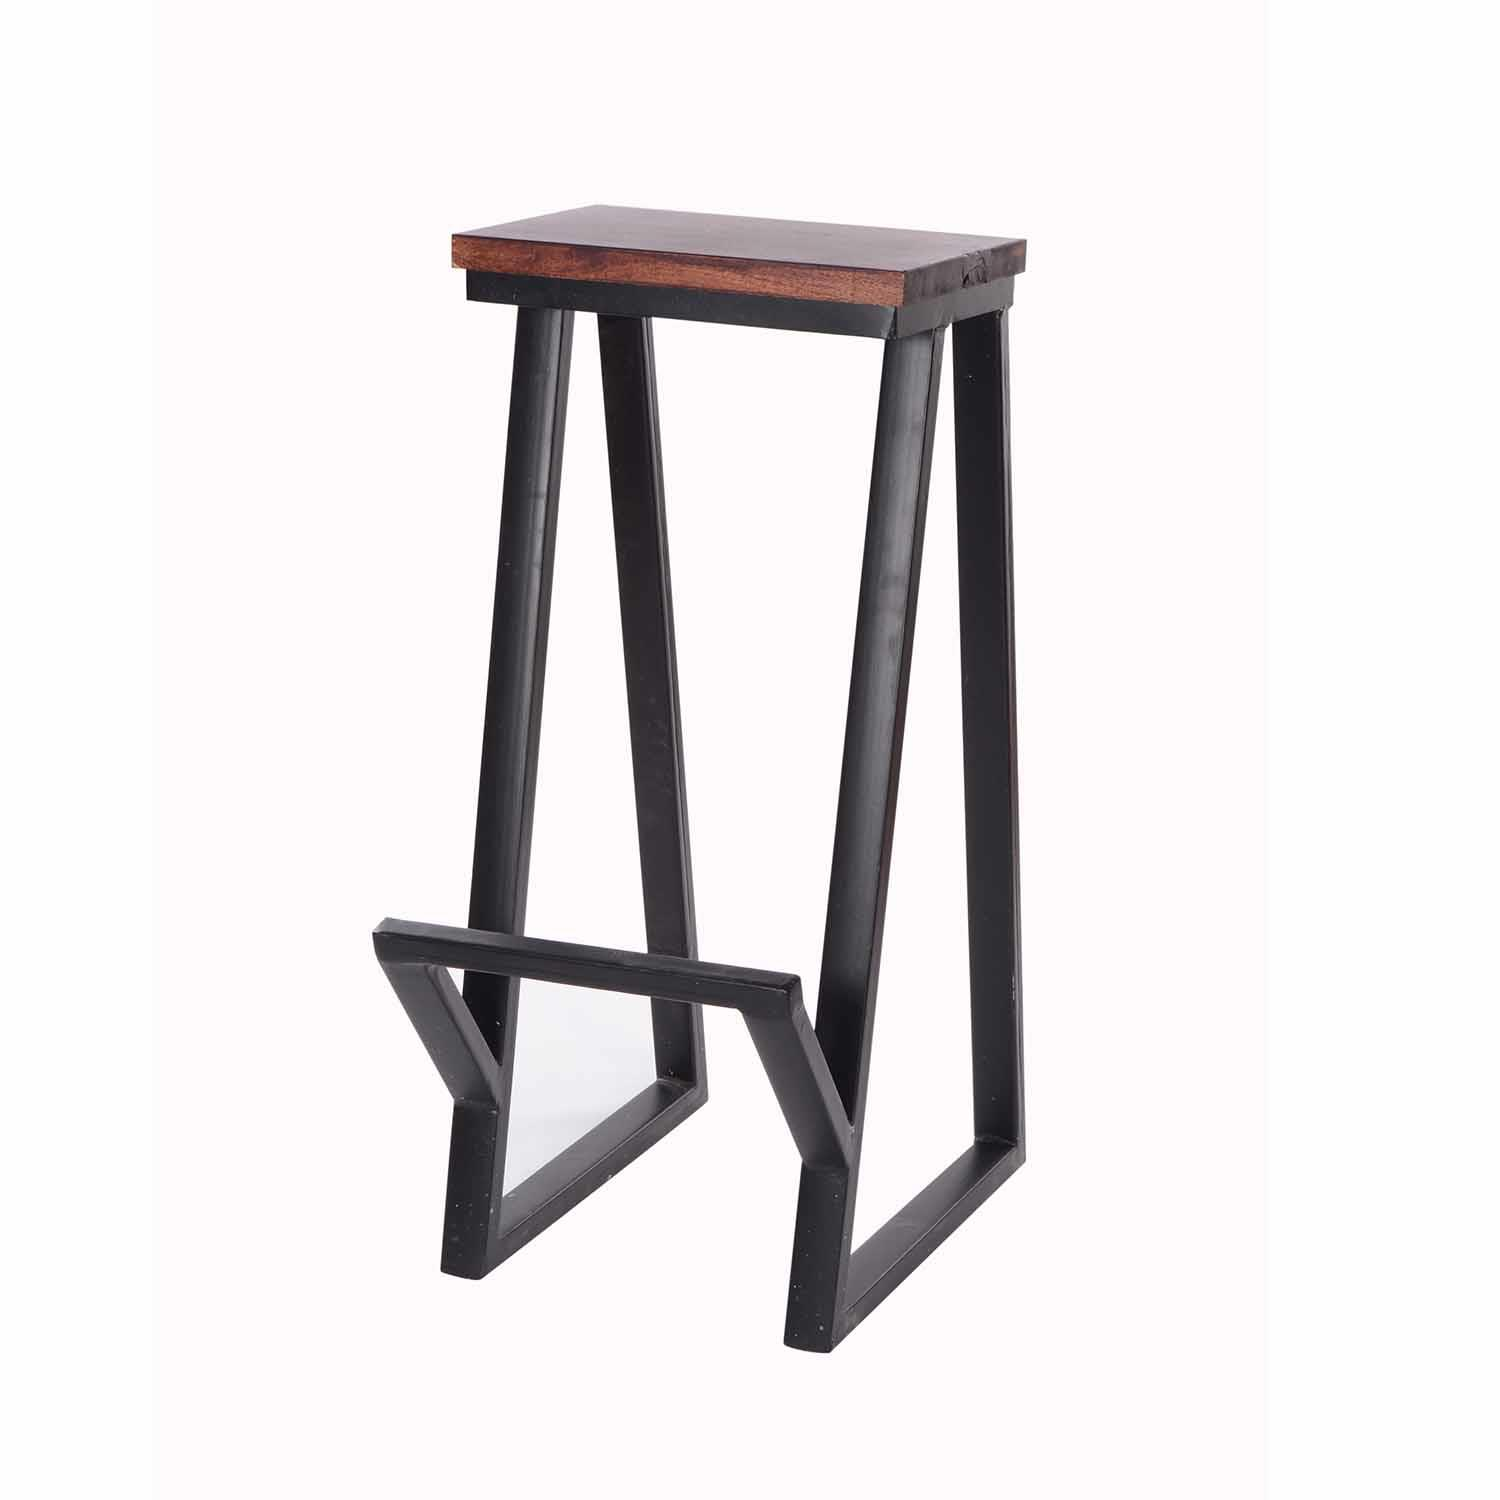 Natural Livings : Wooden Bar Stool Size 15 2 x 18 4 x 32 2009081000532B from naturallivings.com size 1500 x 1500 jpeg 67kB